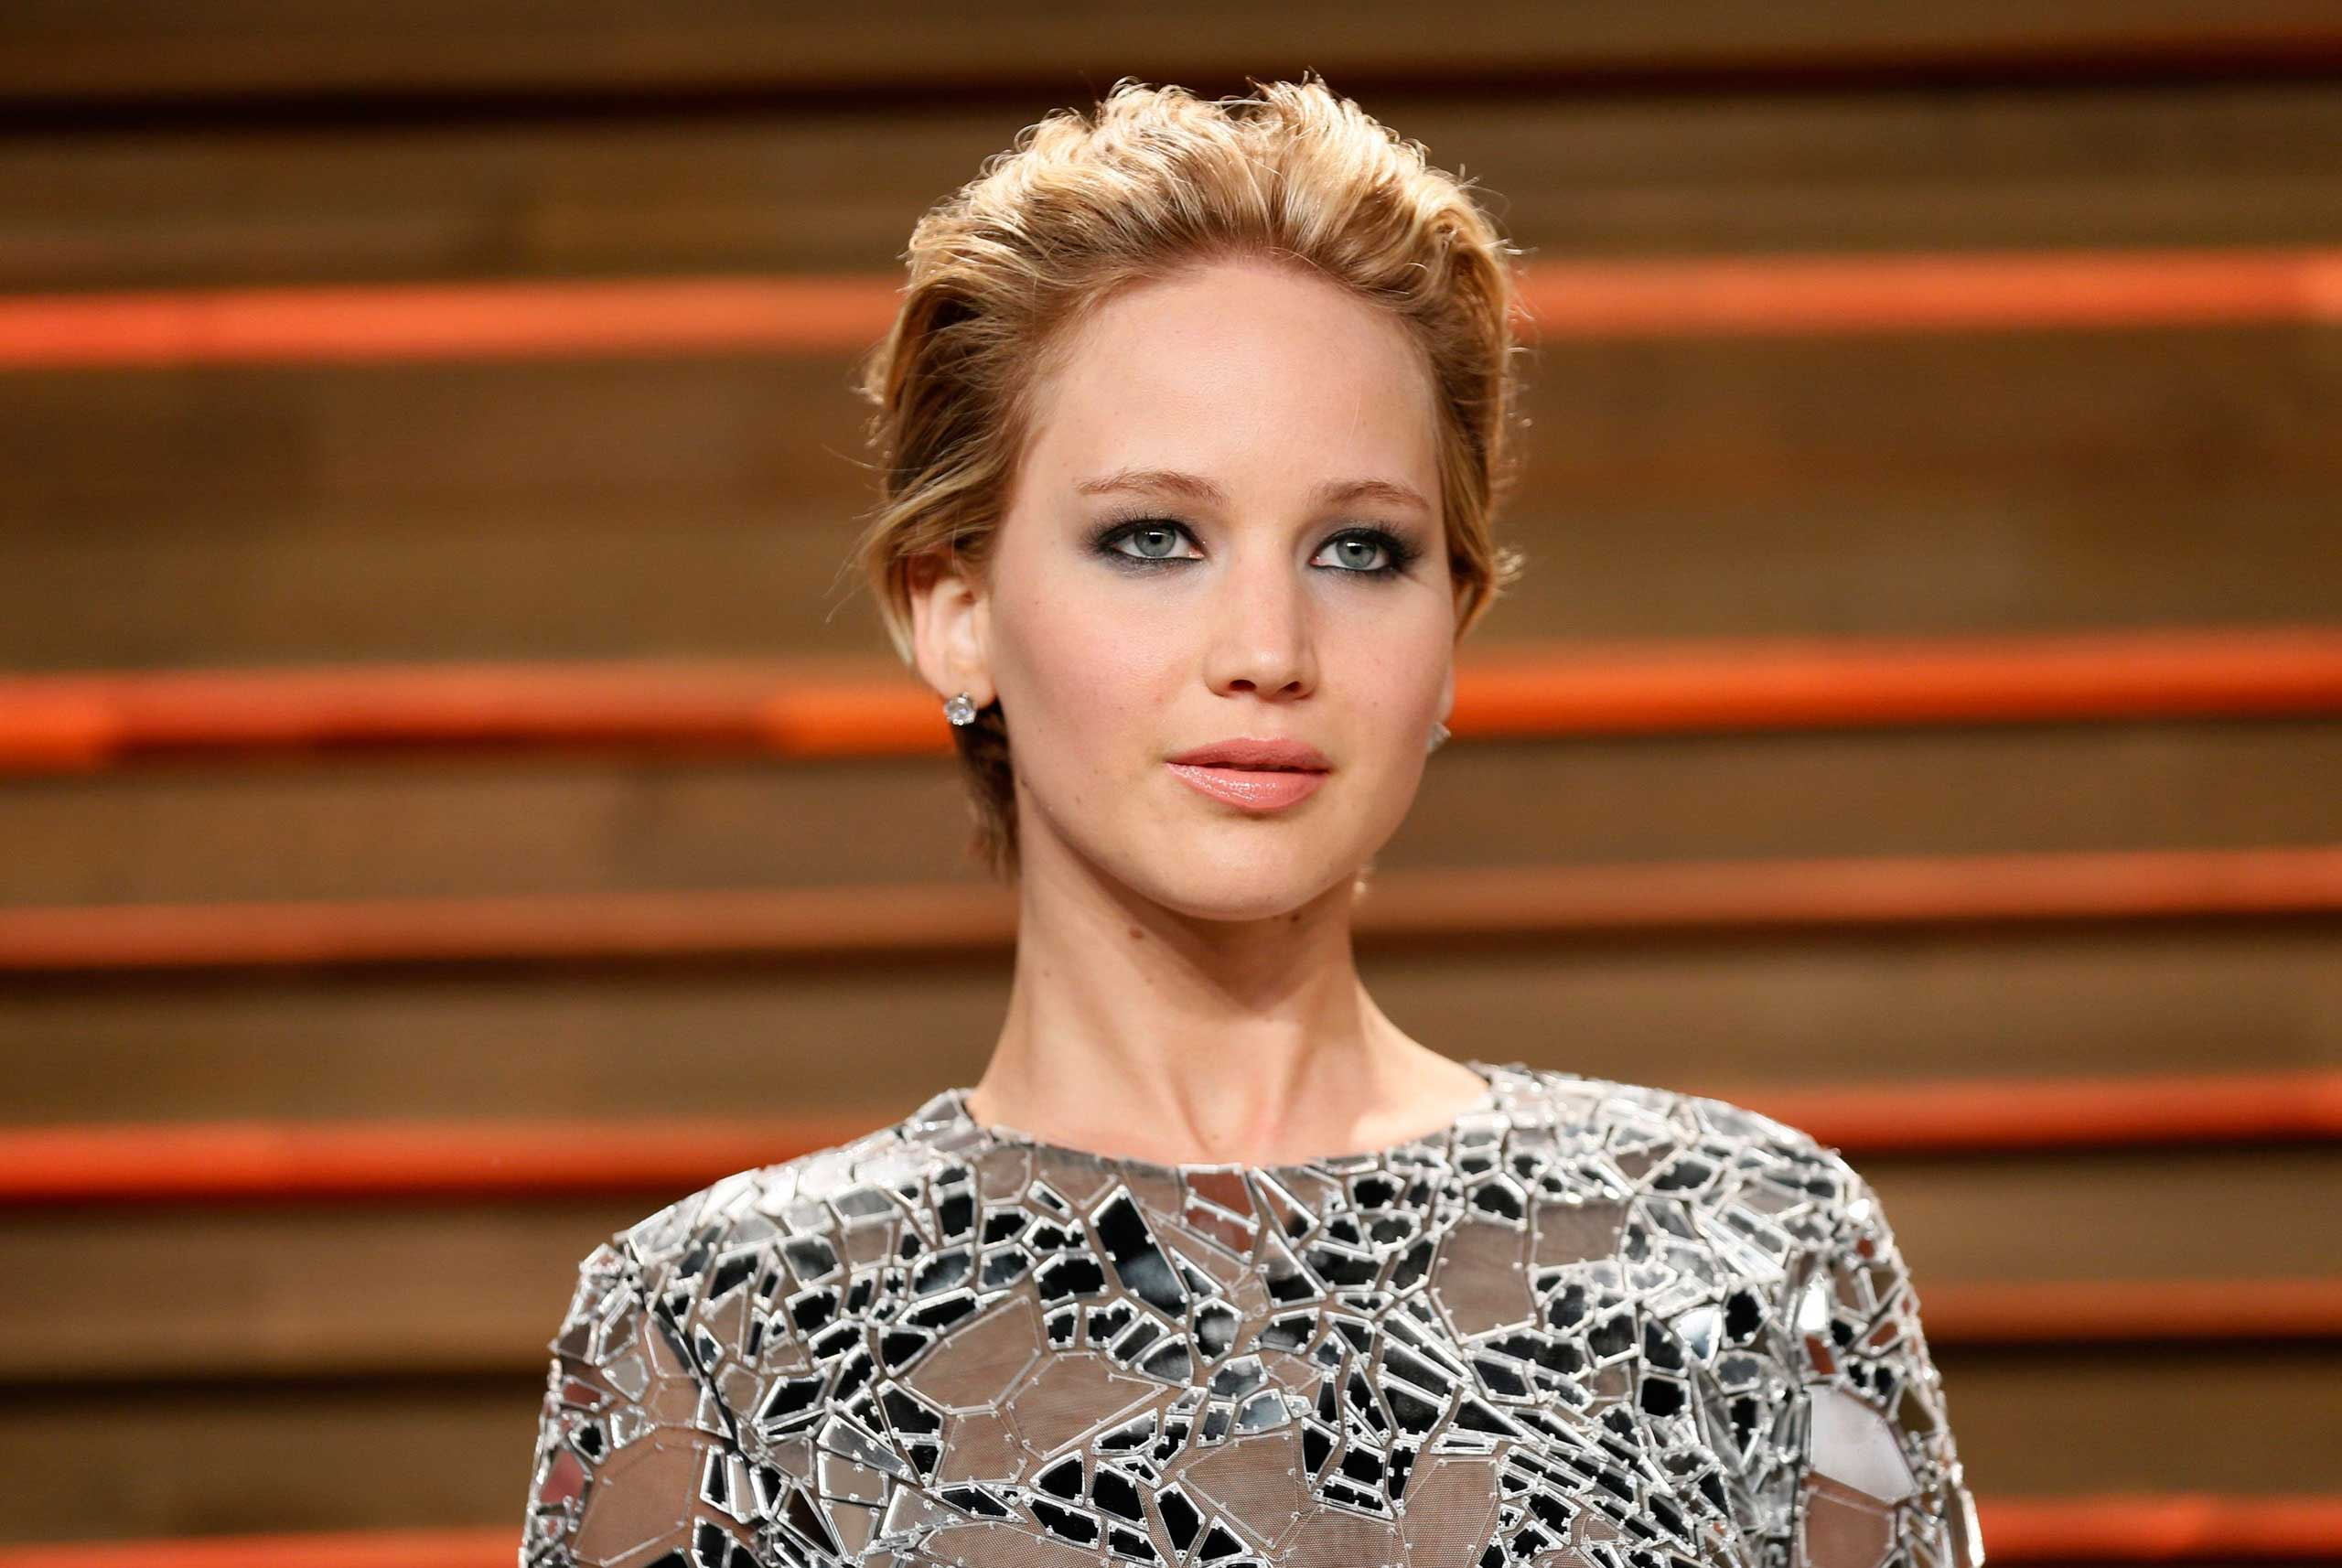 Actress Jennifer Lawrence arrives at the 2014 Vanity Fair Oscars Party in West Hollywood, Calif. on March 2, 2014.